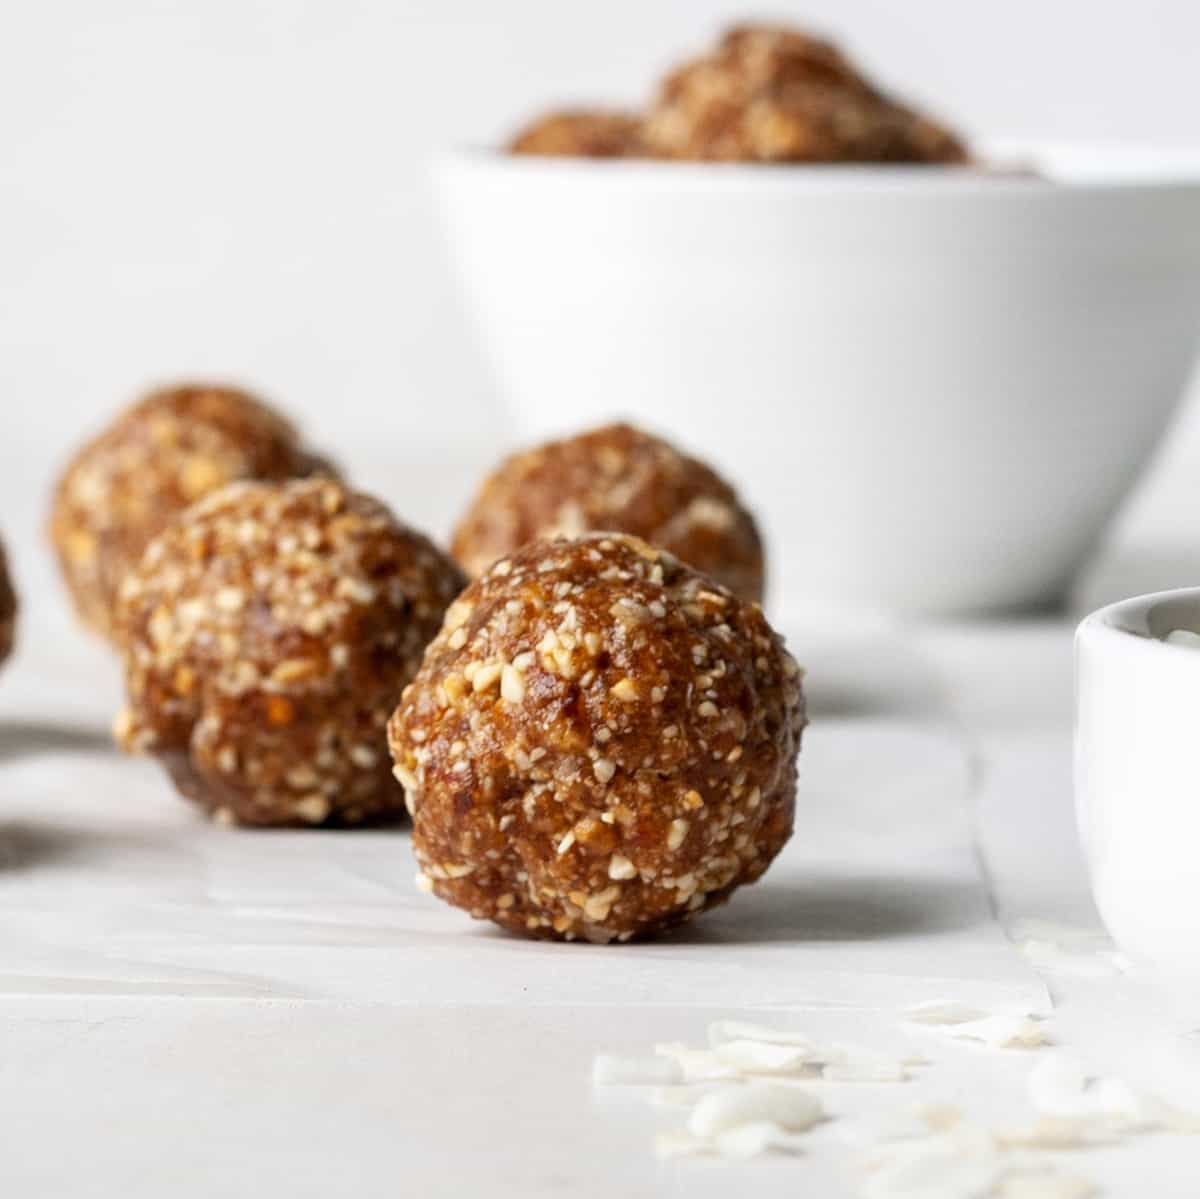 four Cashew Coconut Date Balls in front of a bowl of date balls.